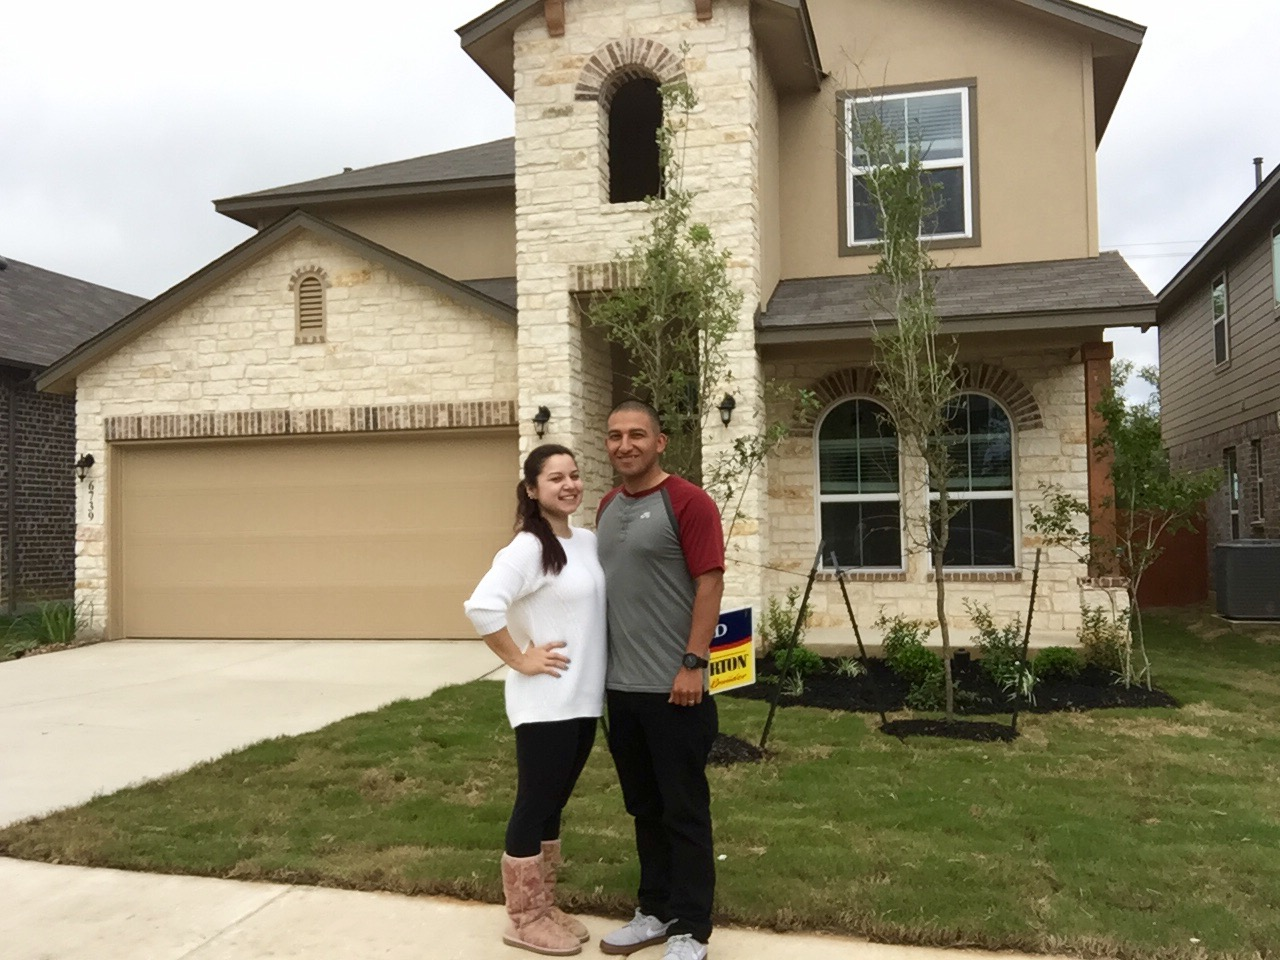 Dr Horton Alamo Ranch Homes Daniel Rodriguez Realtor